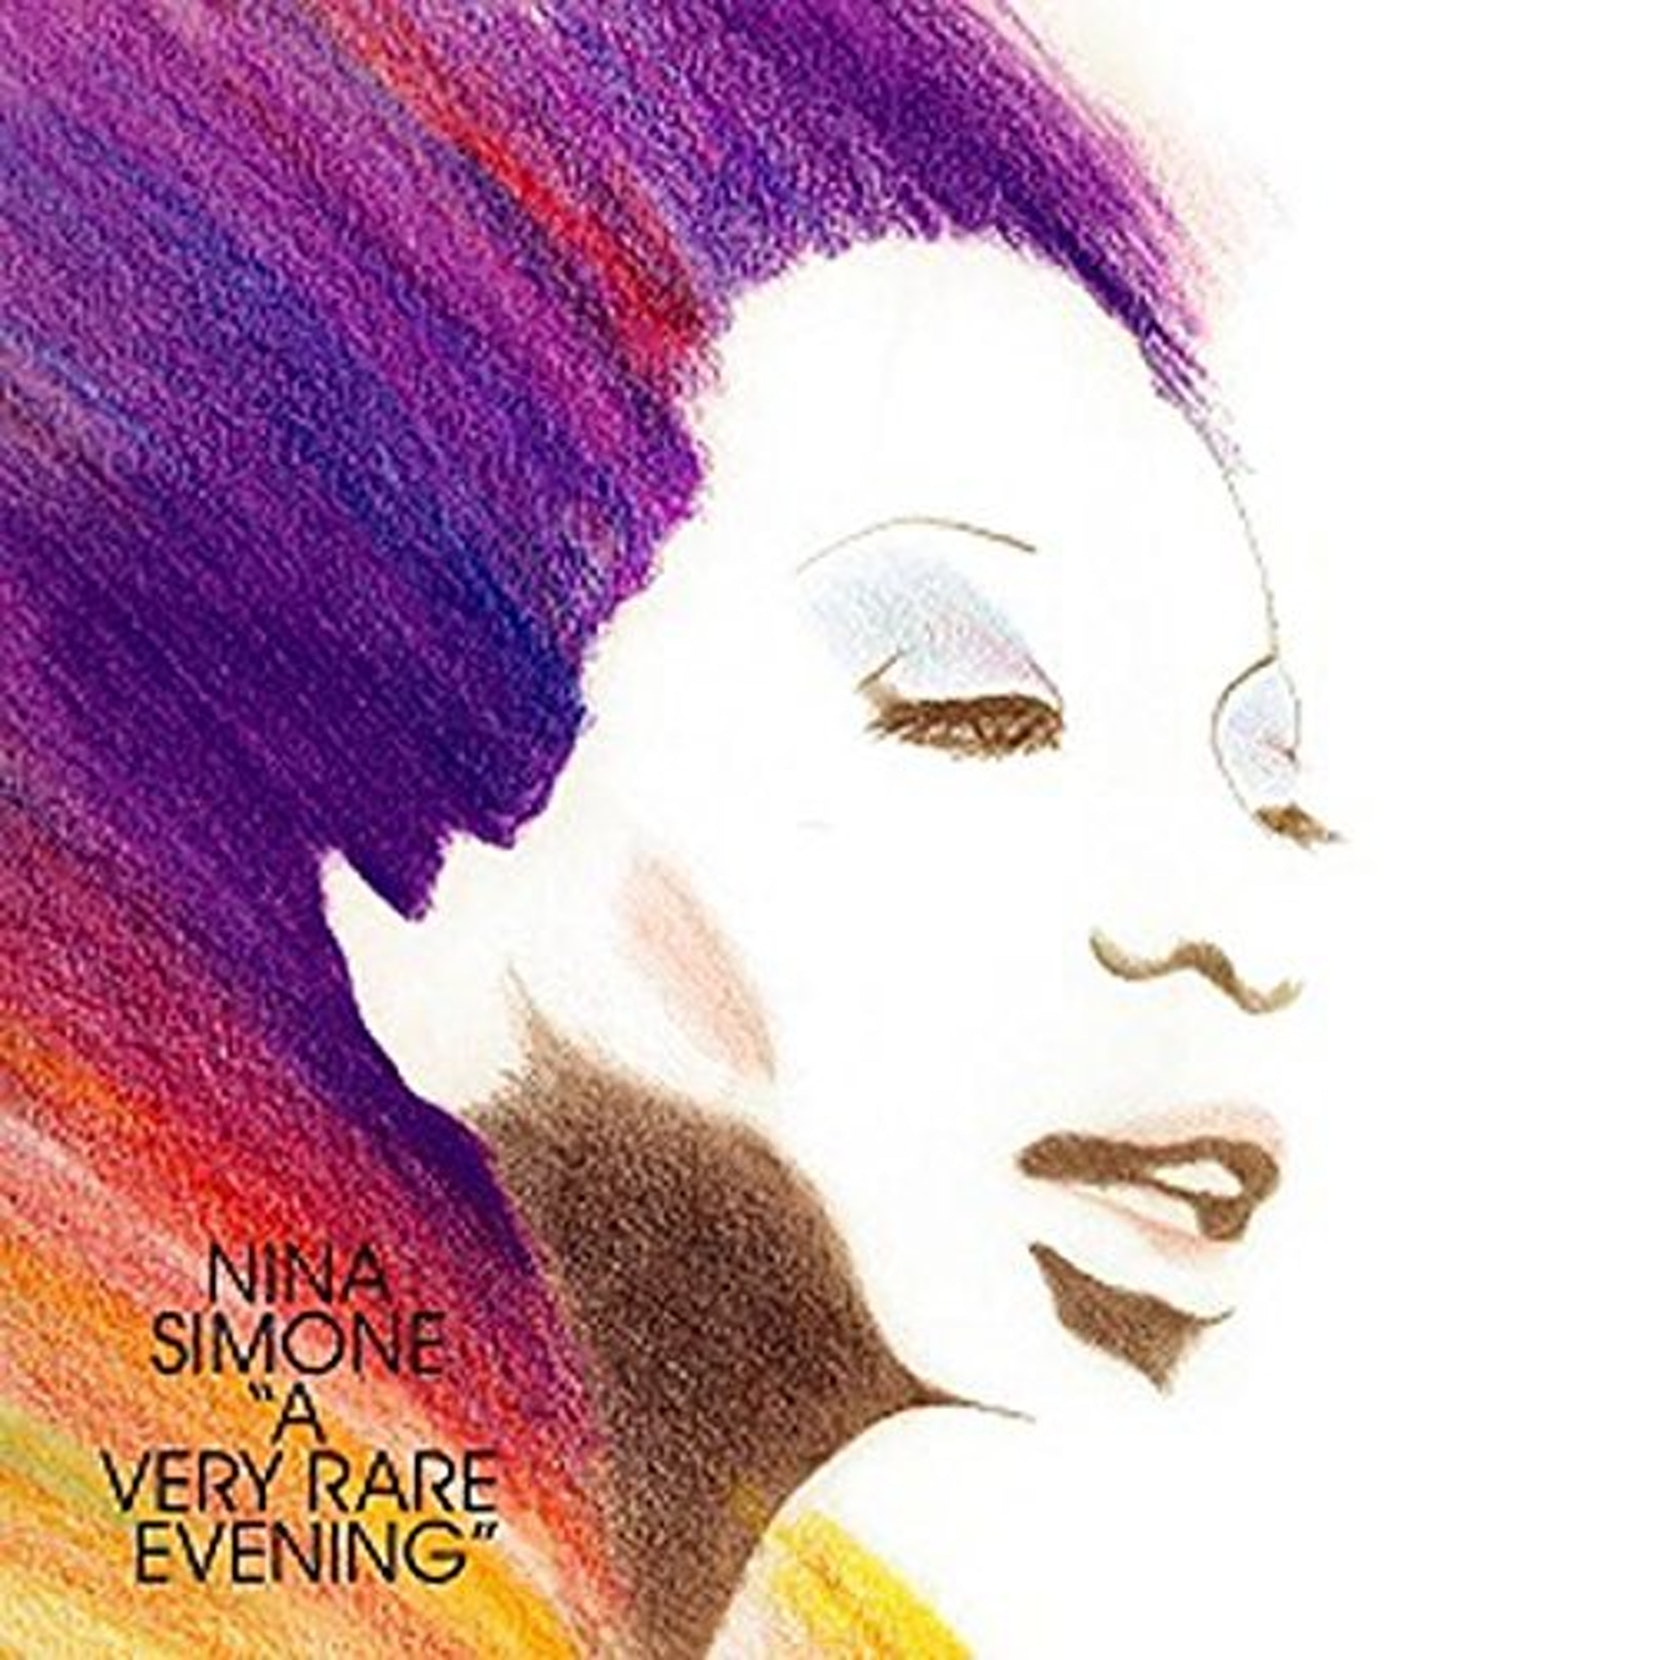 10 Best Nina Simone Albums To Own On Vinyl Vinyl Me Please